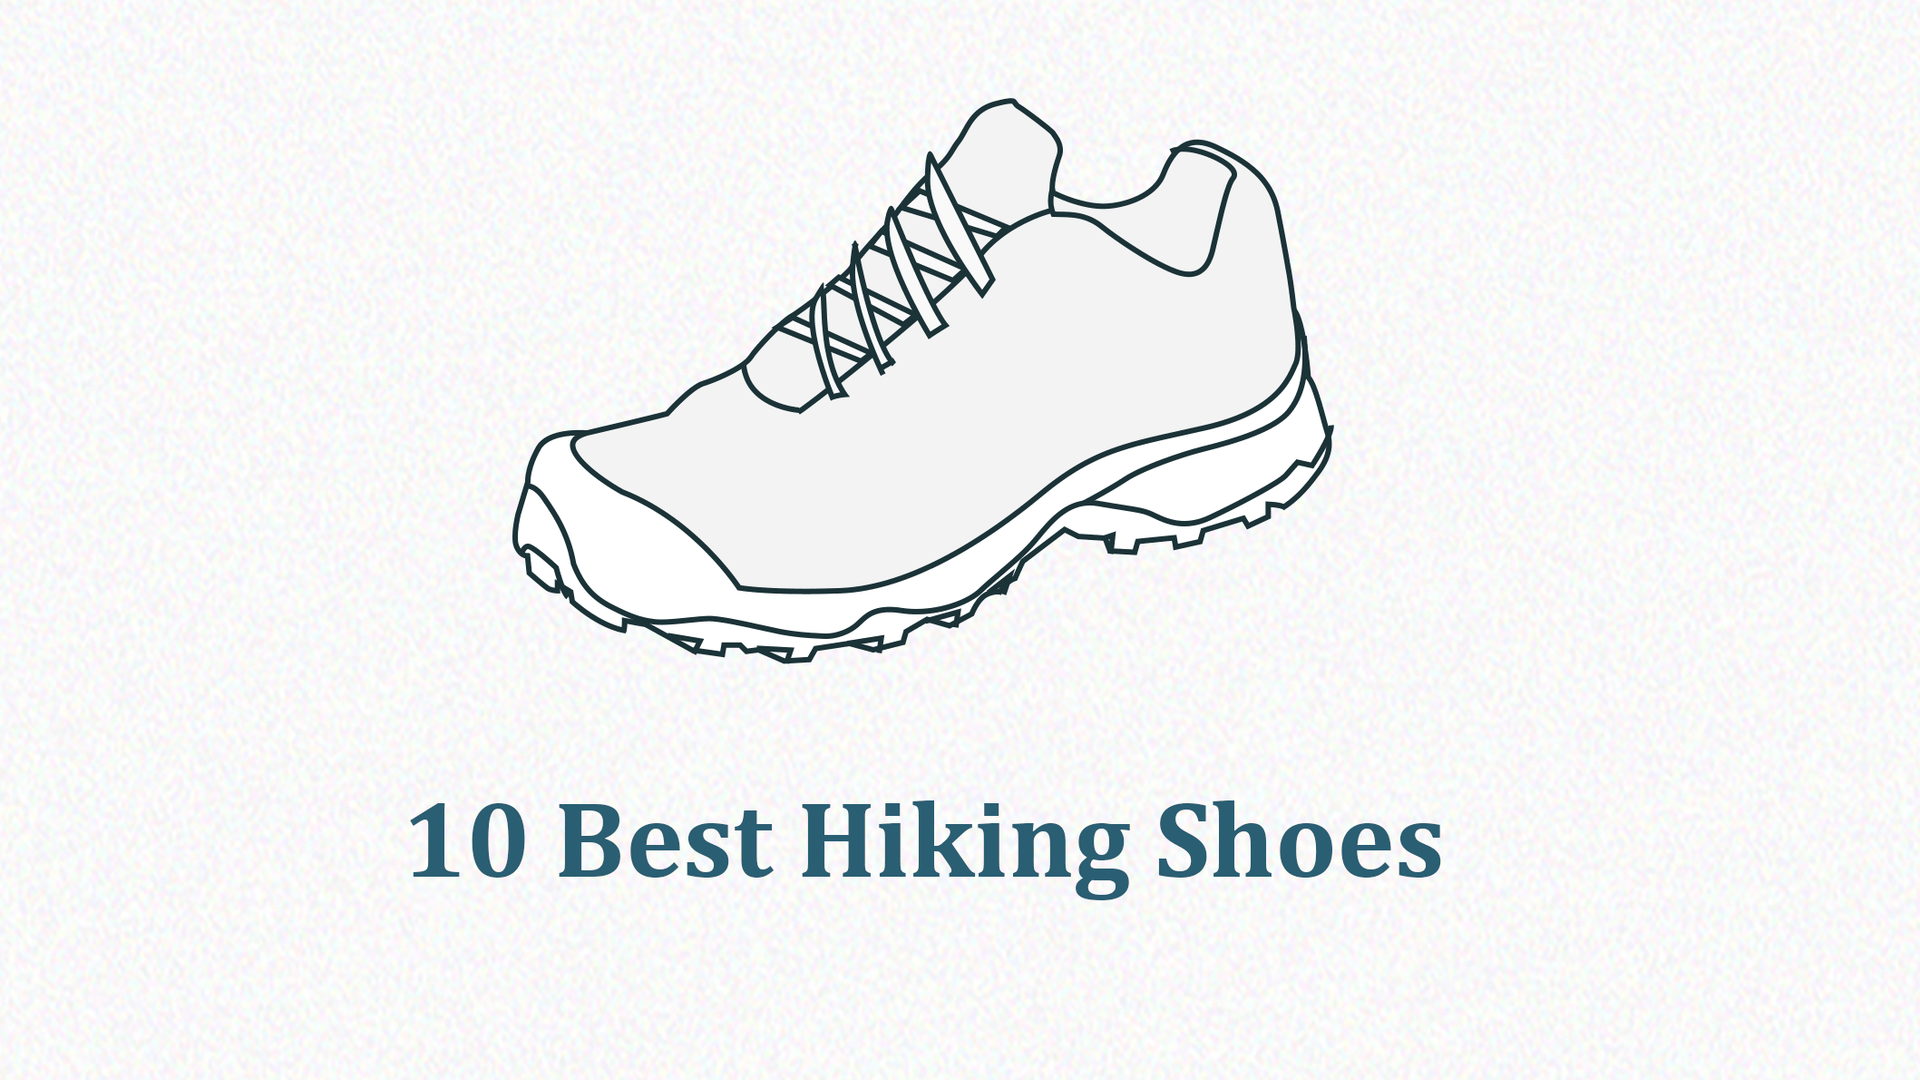 10 Best Hiking Shoes in 2021